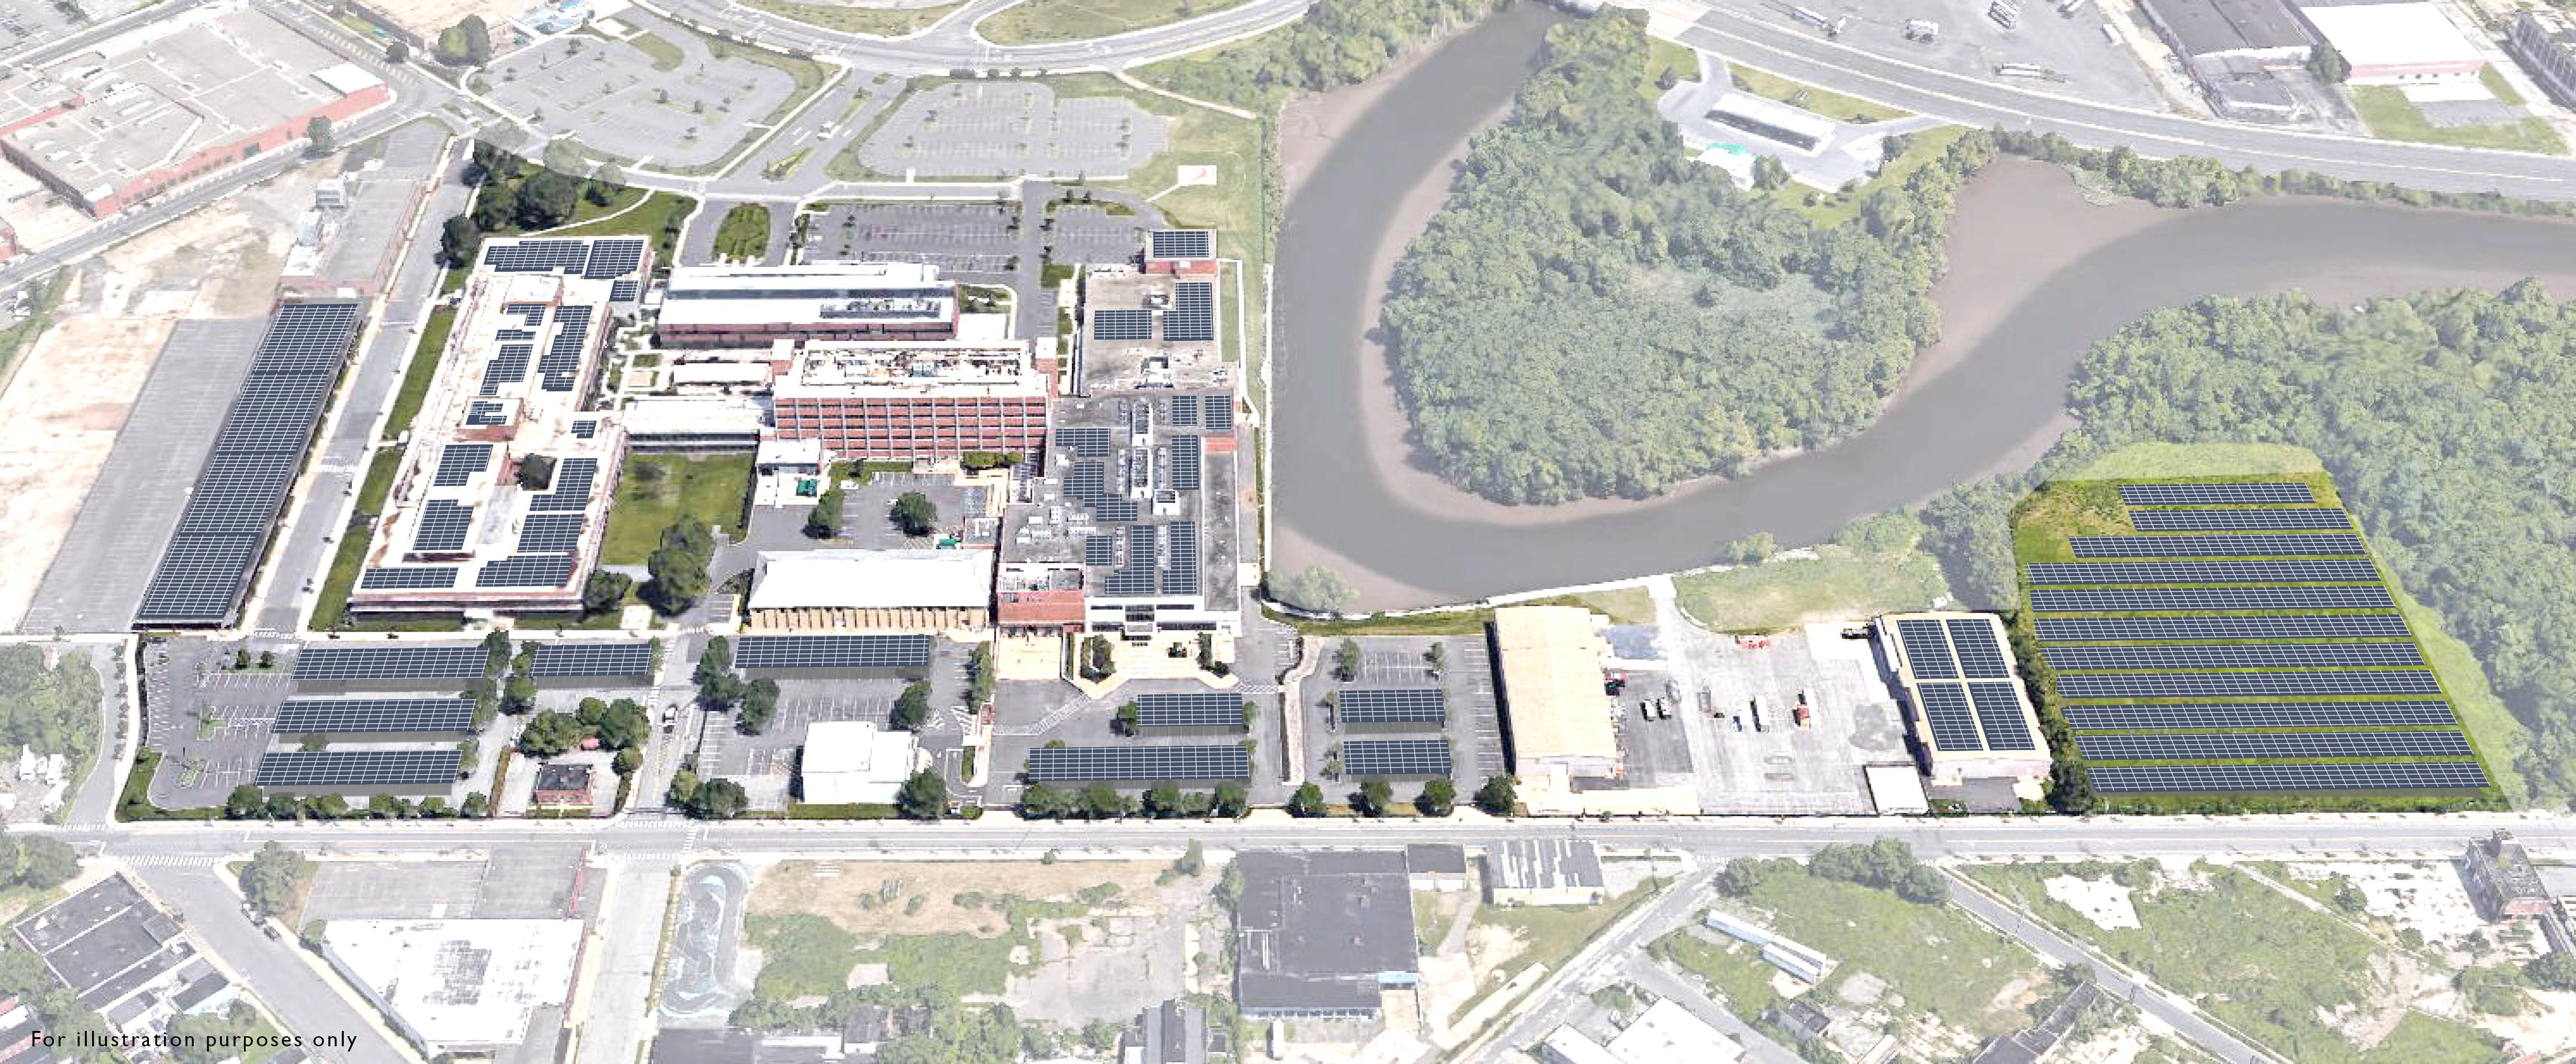 Campbell Soup Co. says it will install a vast array of solar panels over the roofs and parking lots of its Camden headquarters campus, seen here in a project rendering. The 4.4-megawatt solar system would generate about 20 percent of the complex´s annual energy needs when it comes online in late 2017. (CAMPBELL SOUP CO.)